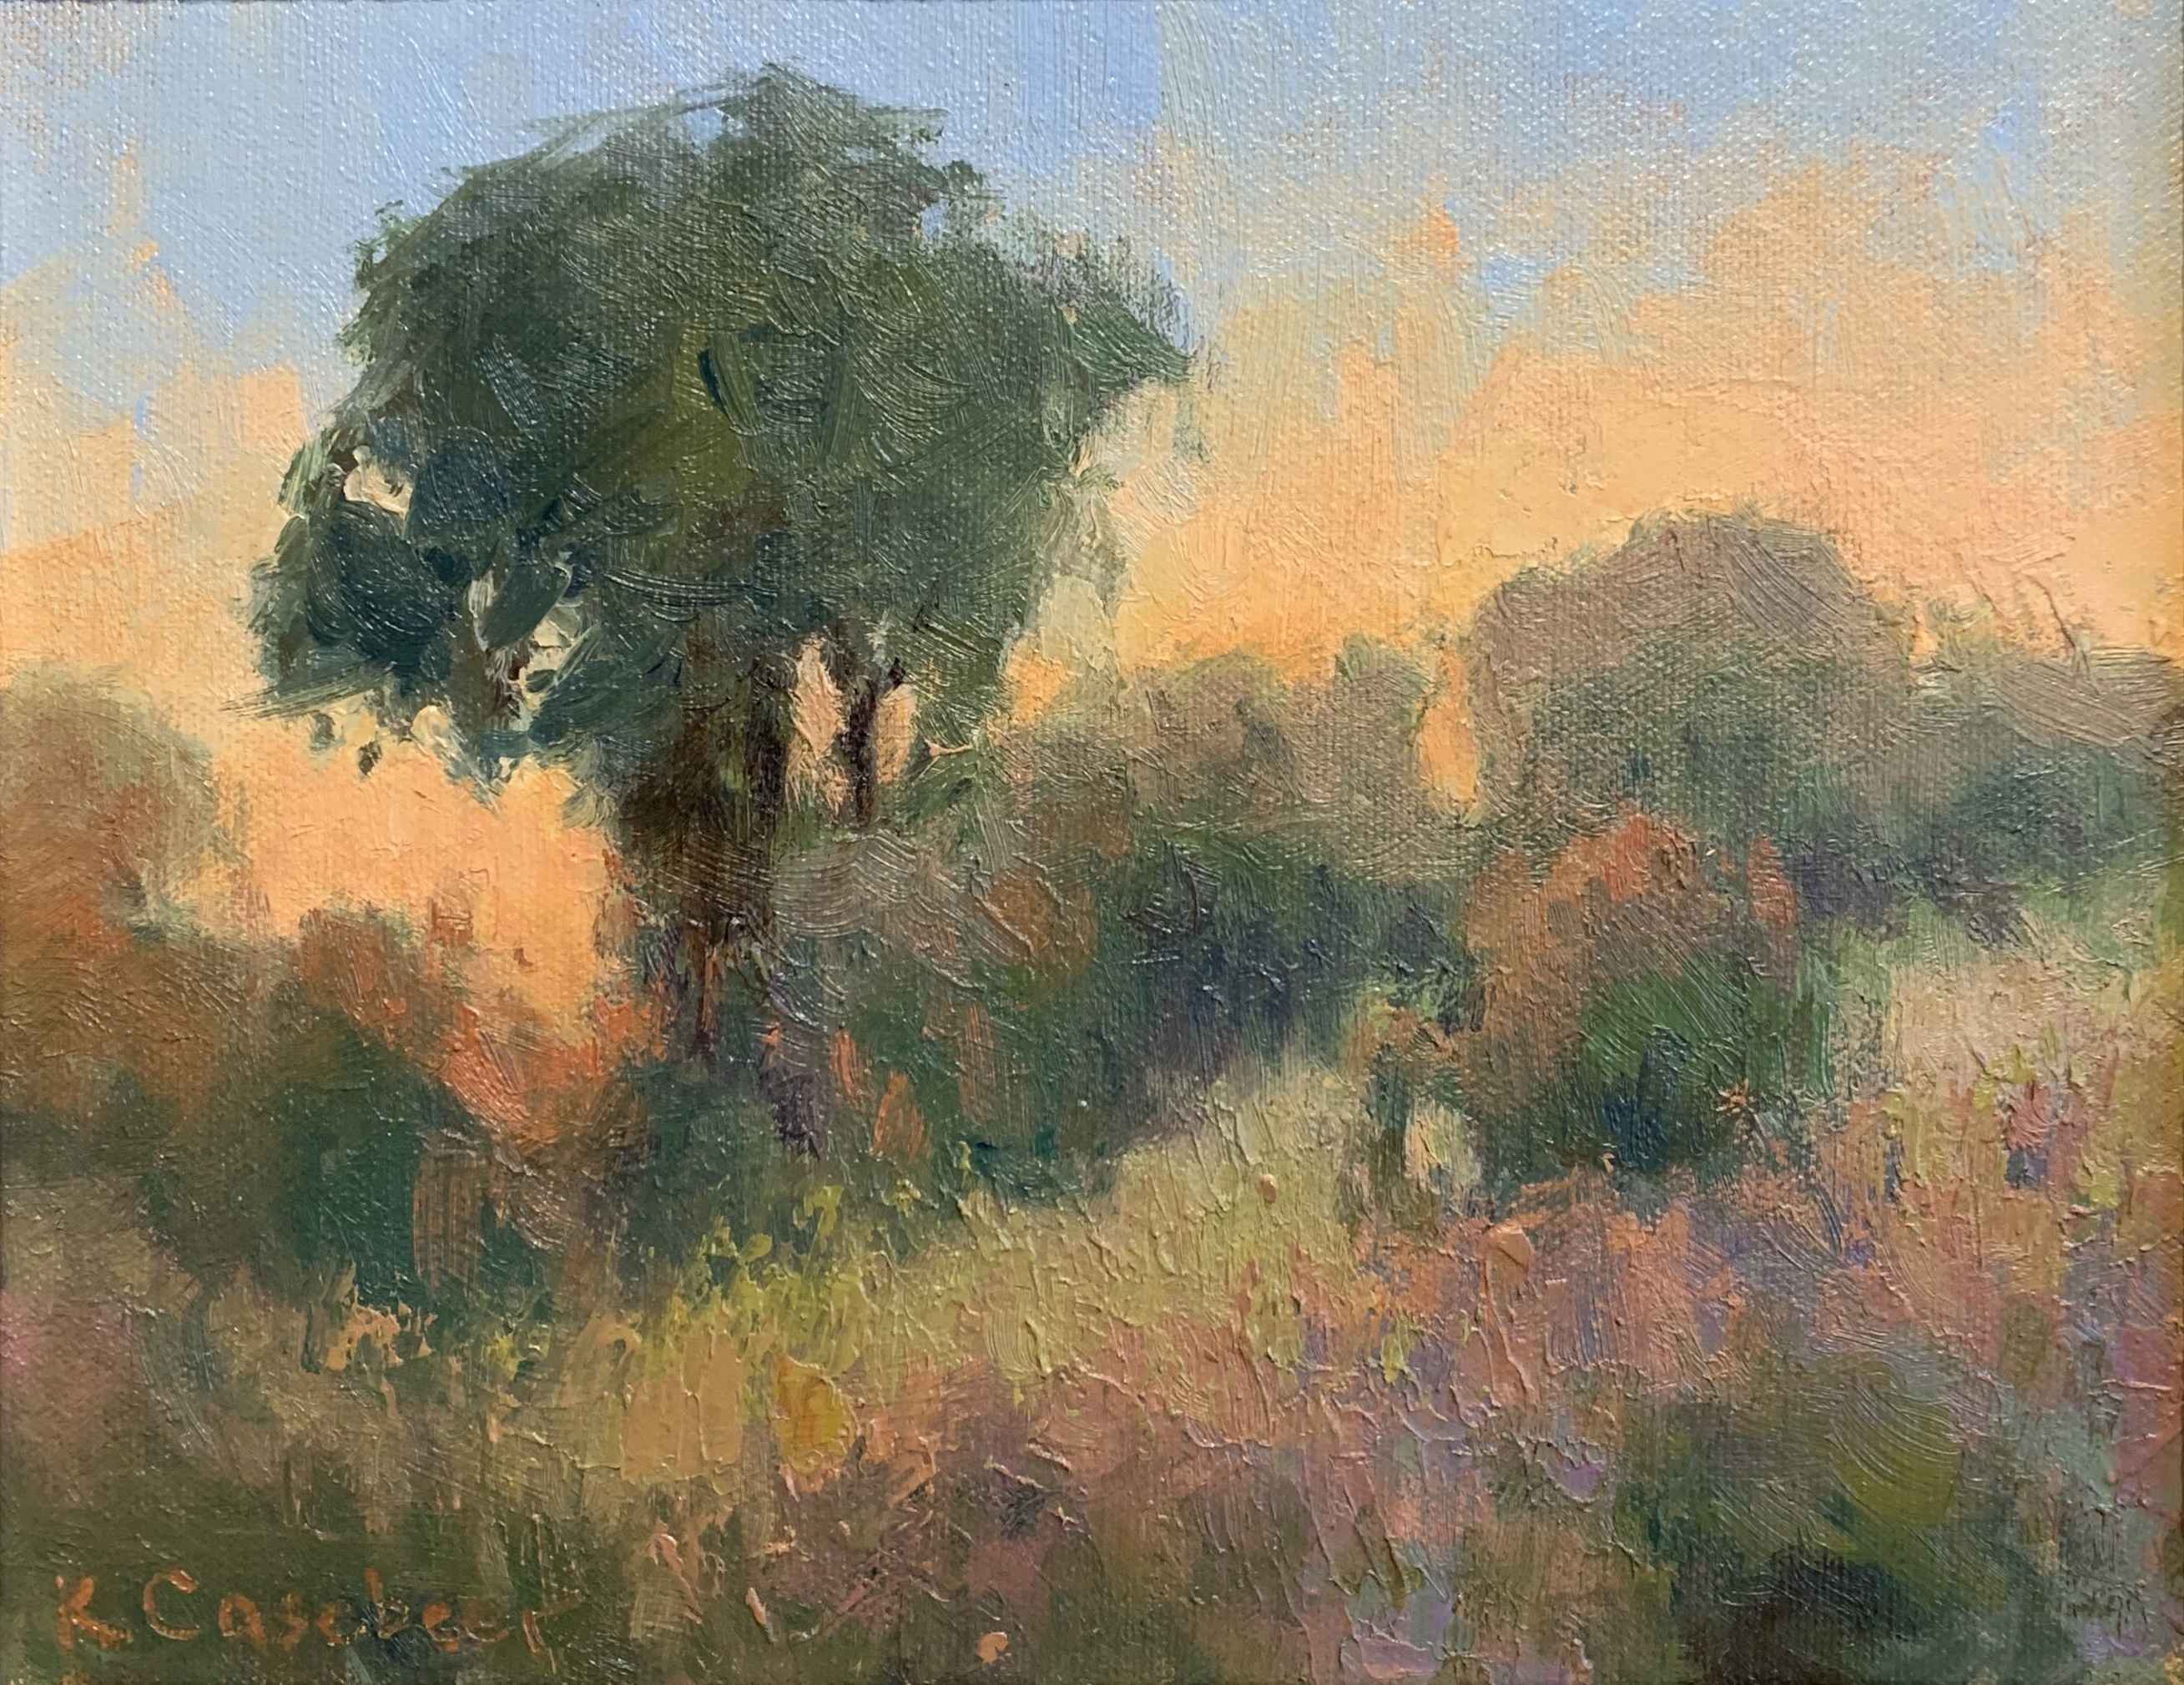 Tree at Mary's Place by  Kim Casebeer - Masterpiece Online